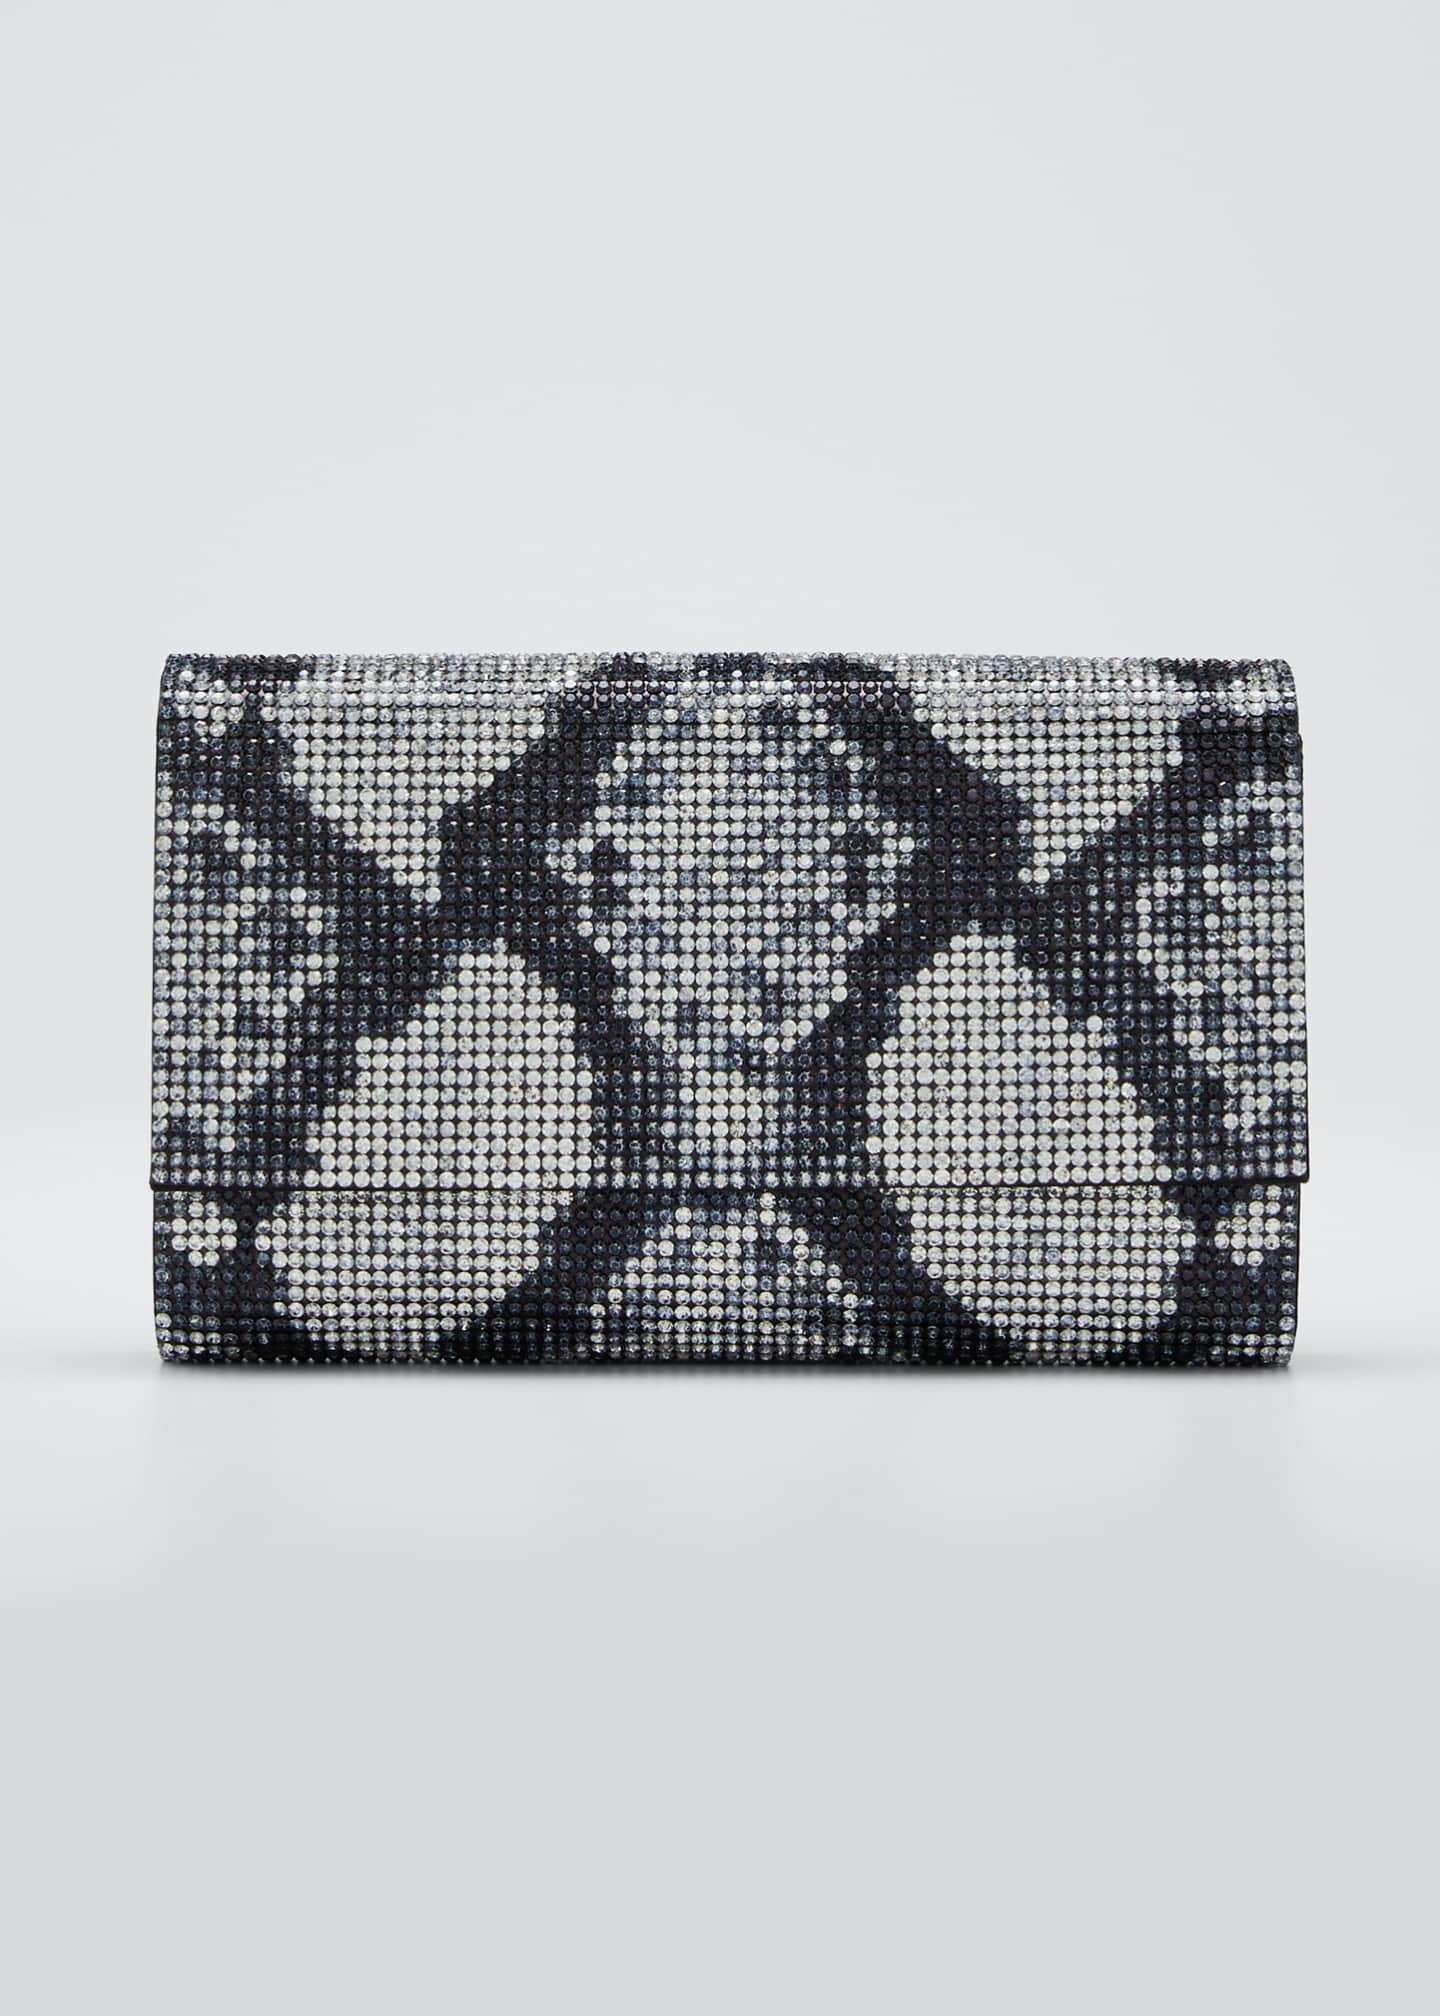 Judith Leiber Couture Fizzoni Crystal Clutch Bag with